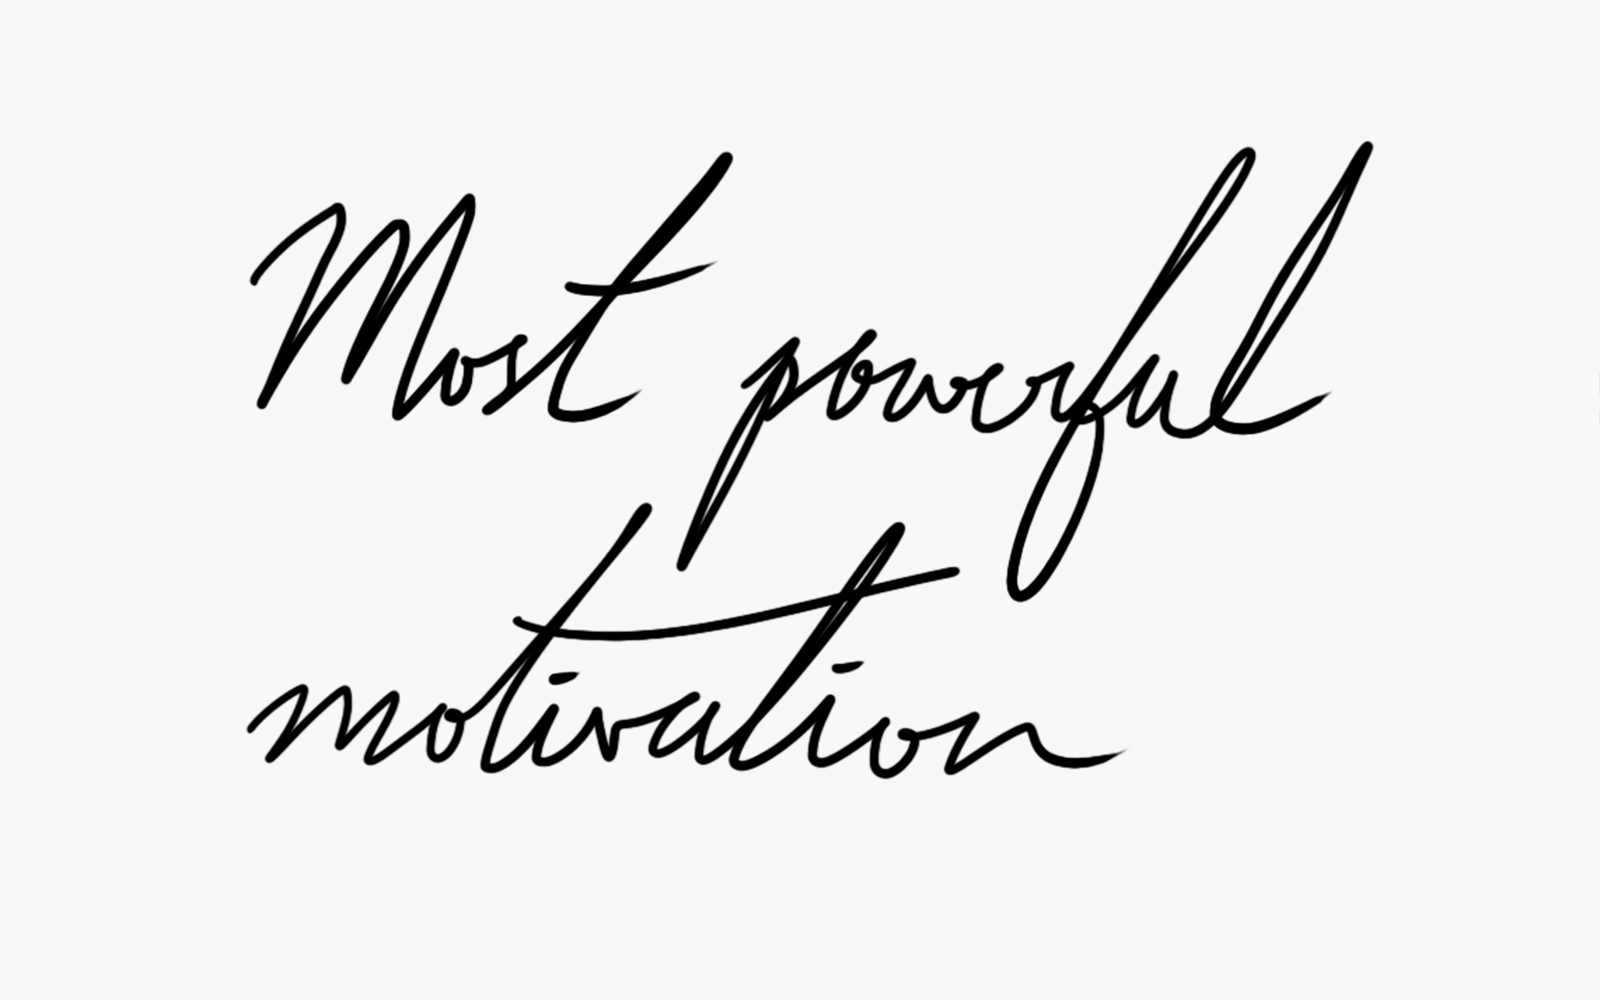 Most powerful motivation